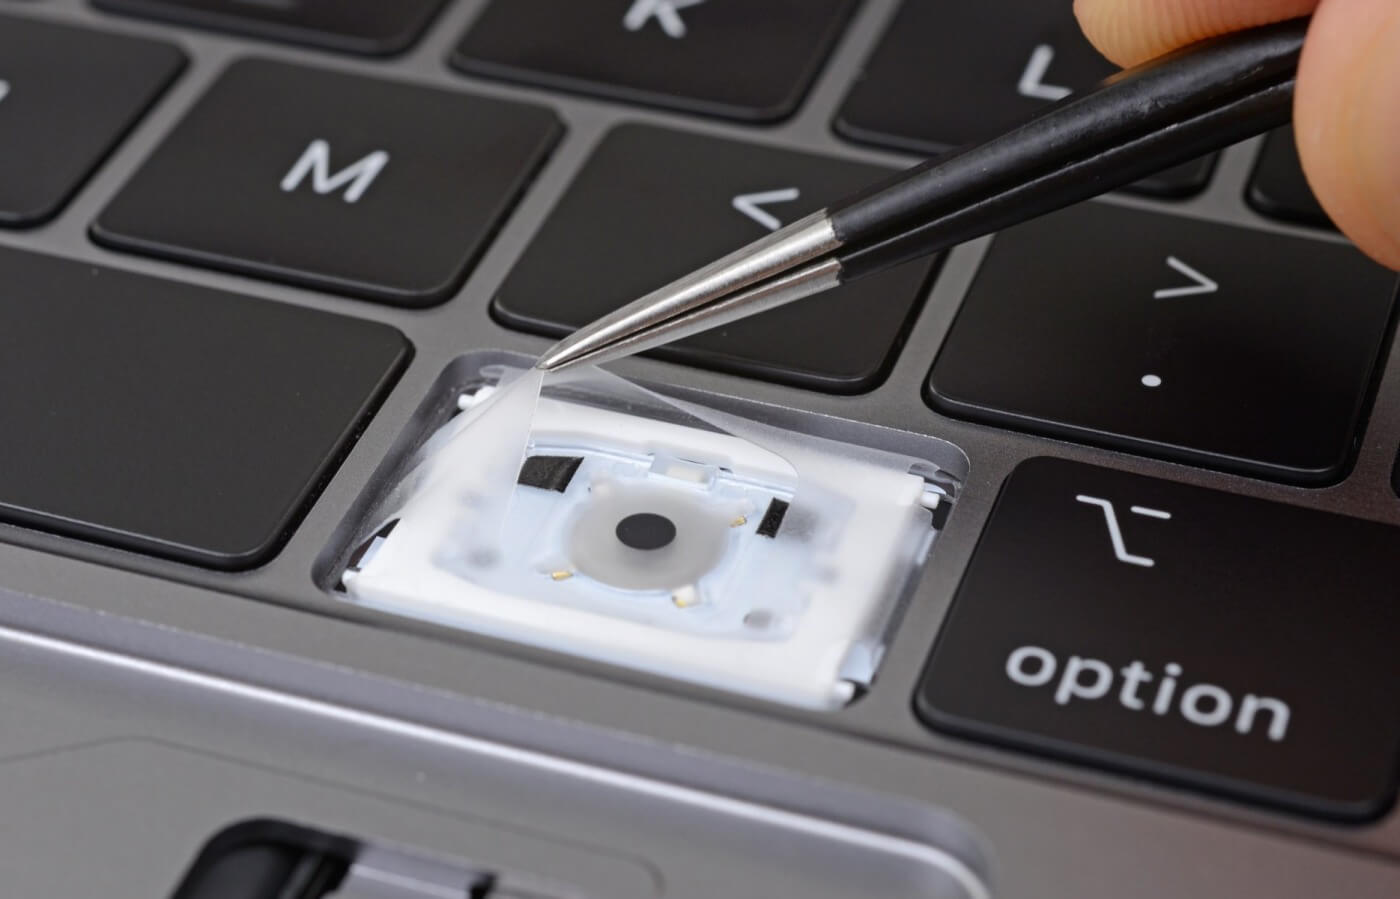 clean Macbook keyboard